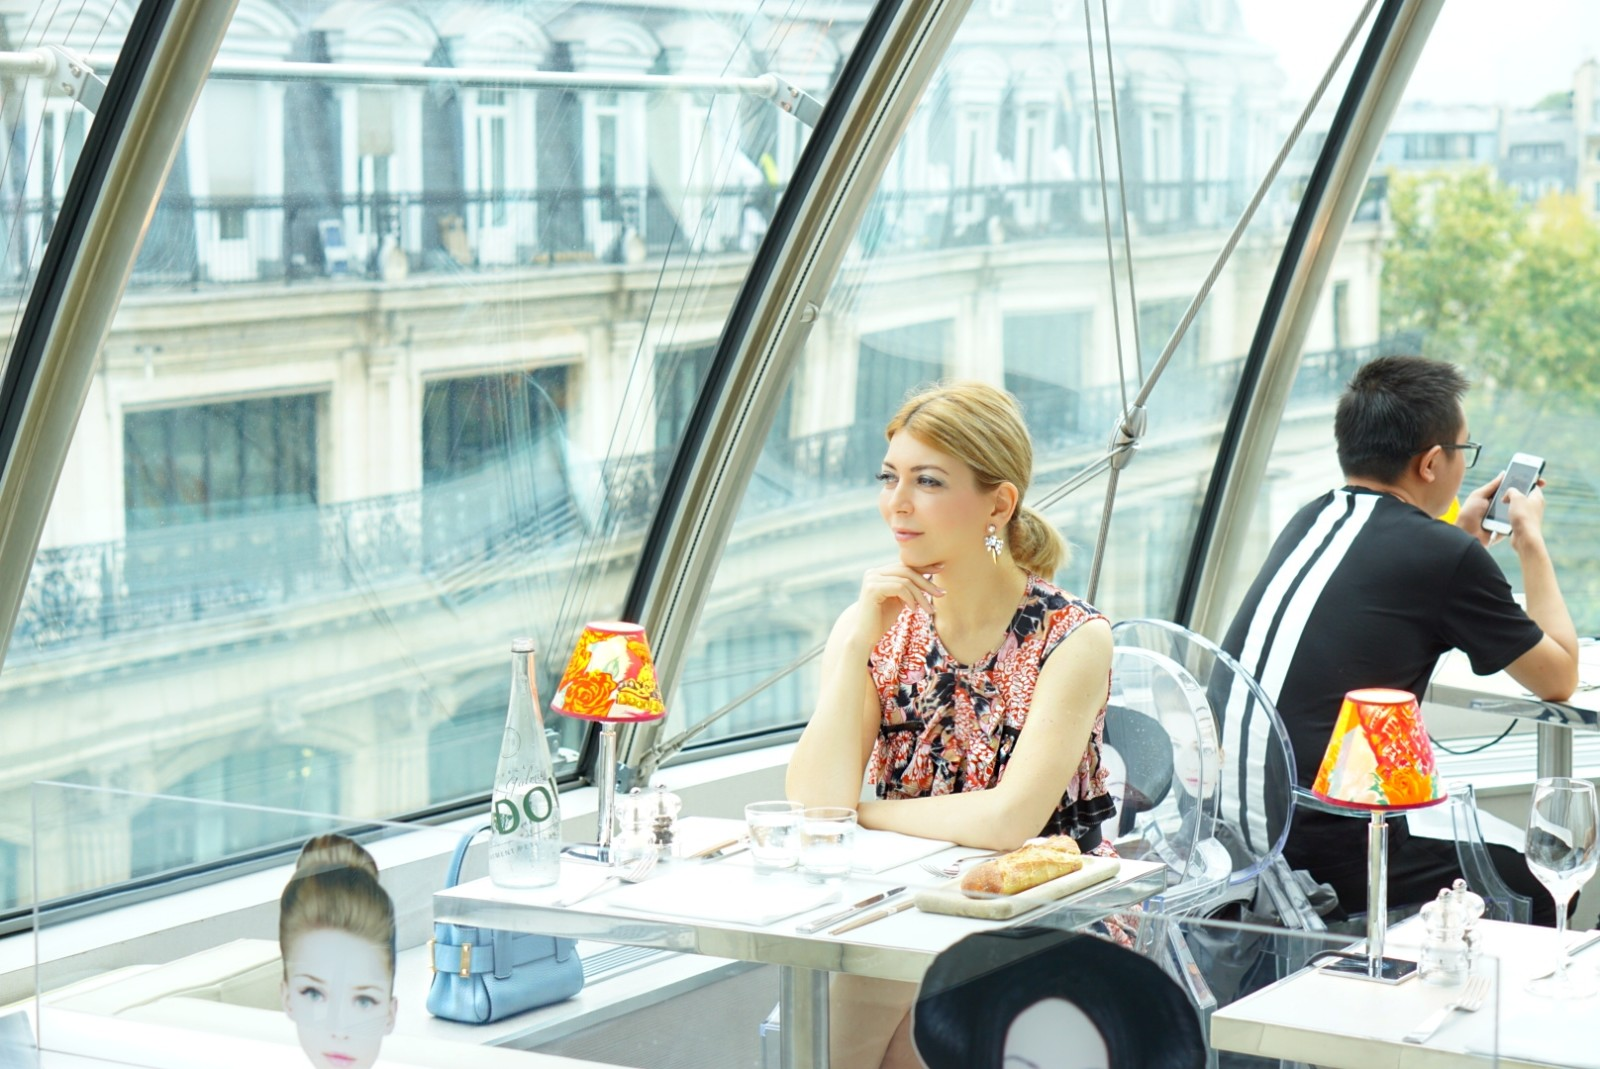 Yuliya Savytska in Kong Paris, Lunch in KONG à la Carrie Bradshaw - #jolimentblogxpfw